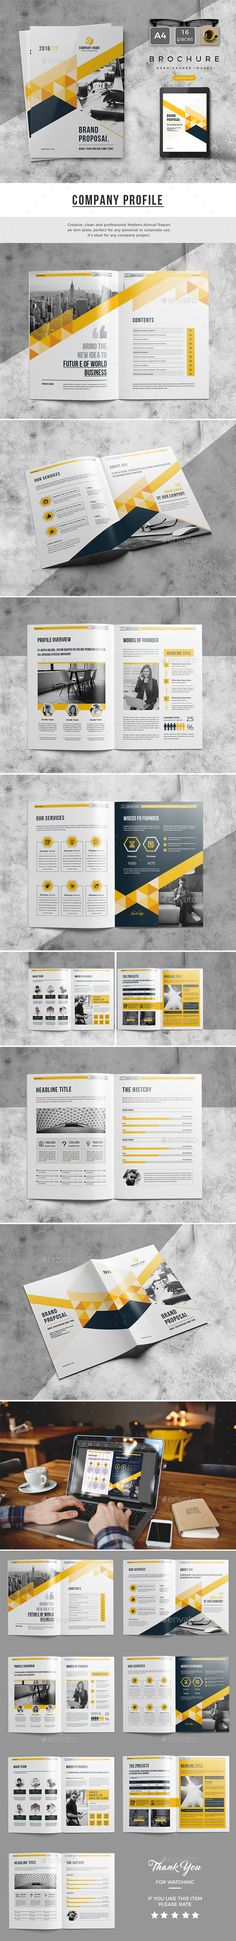 Proposal 2017 — InDesign INDD #shopping #technology • Download ➝ https://graphicriver.net/item/proposal-2017/19521279?ref=pxcr